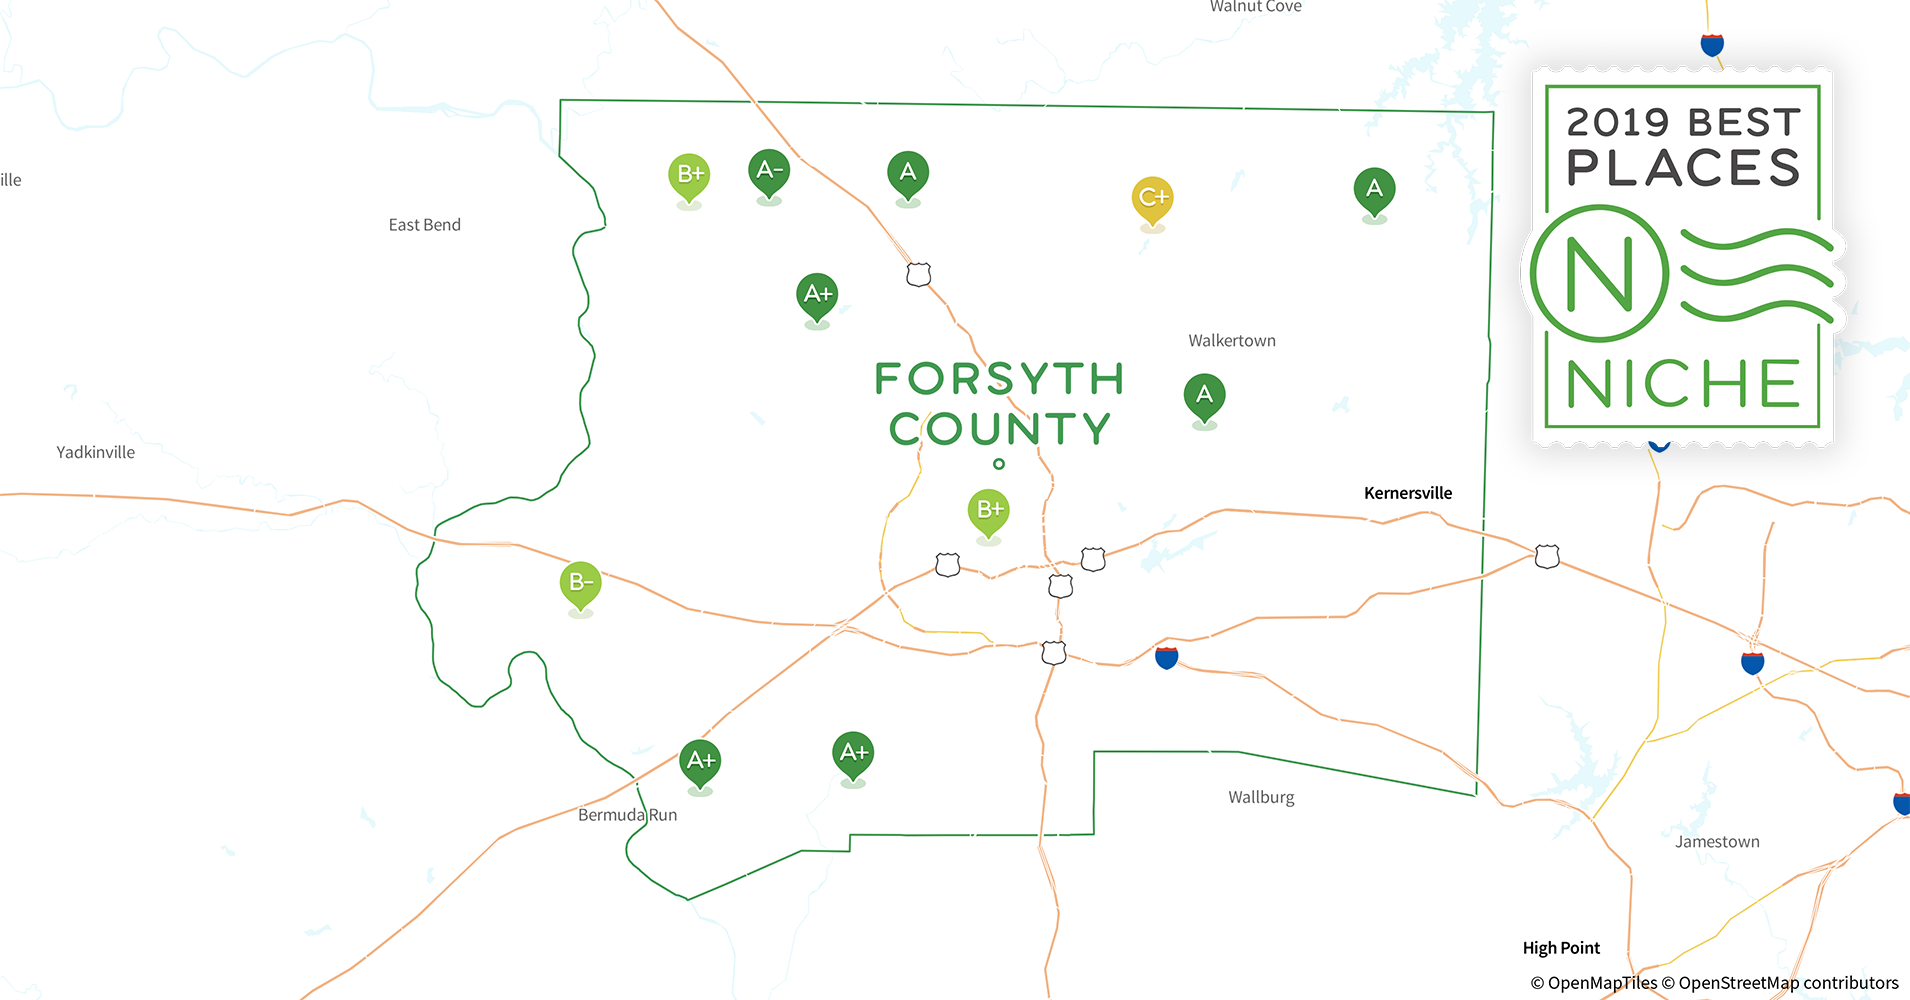 2019 Best Places to Live in Forsyth County, NC - Niche